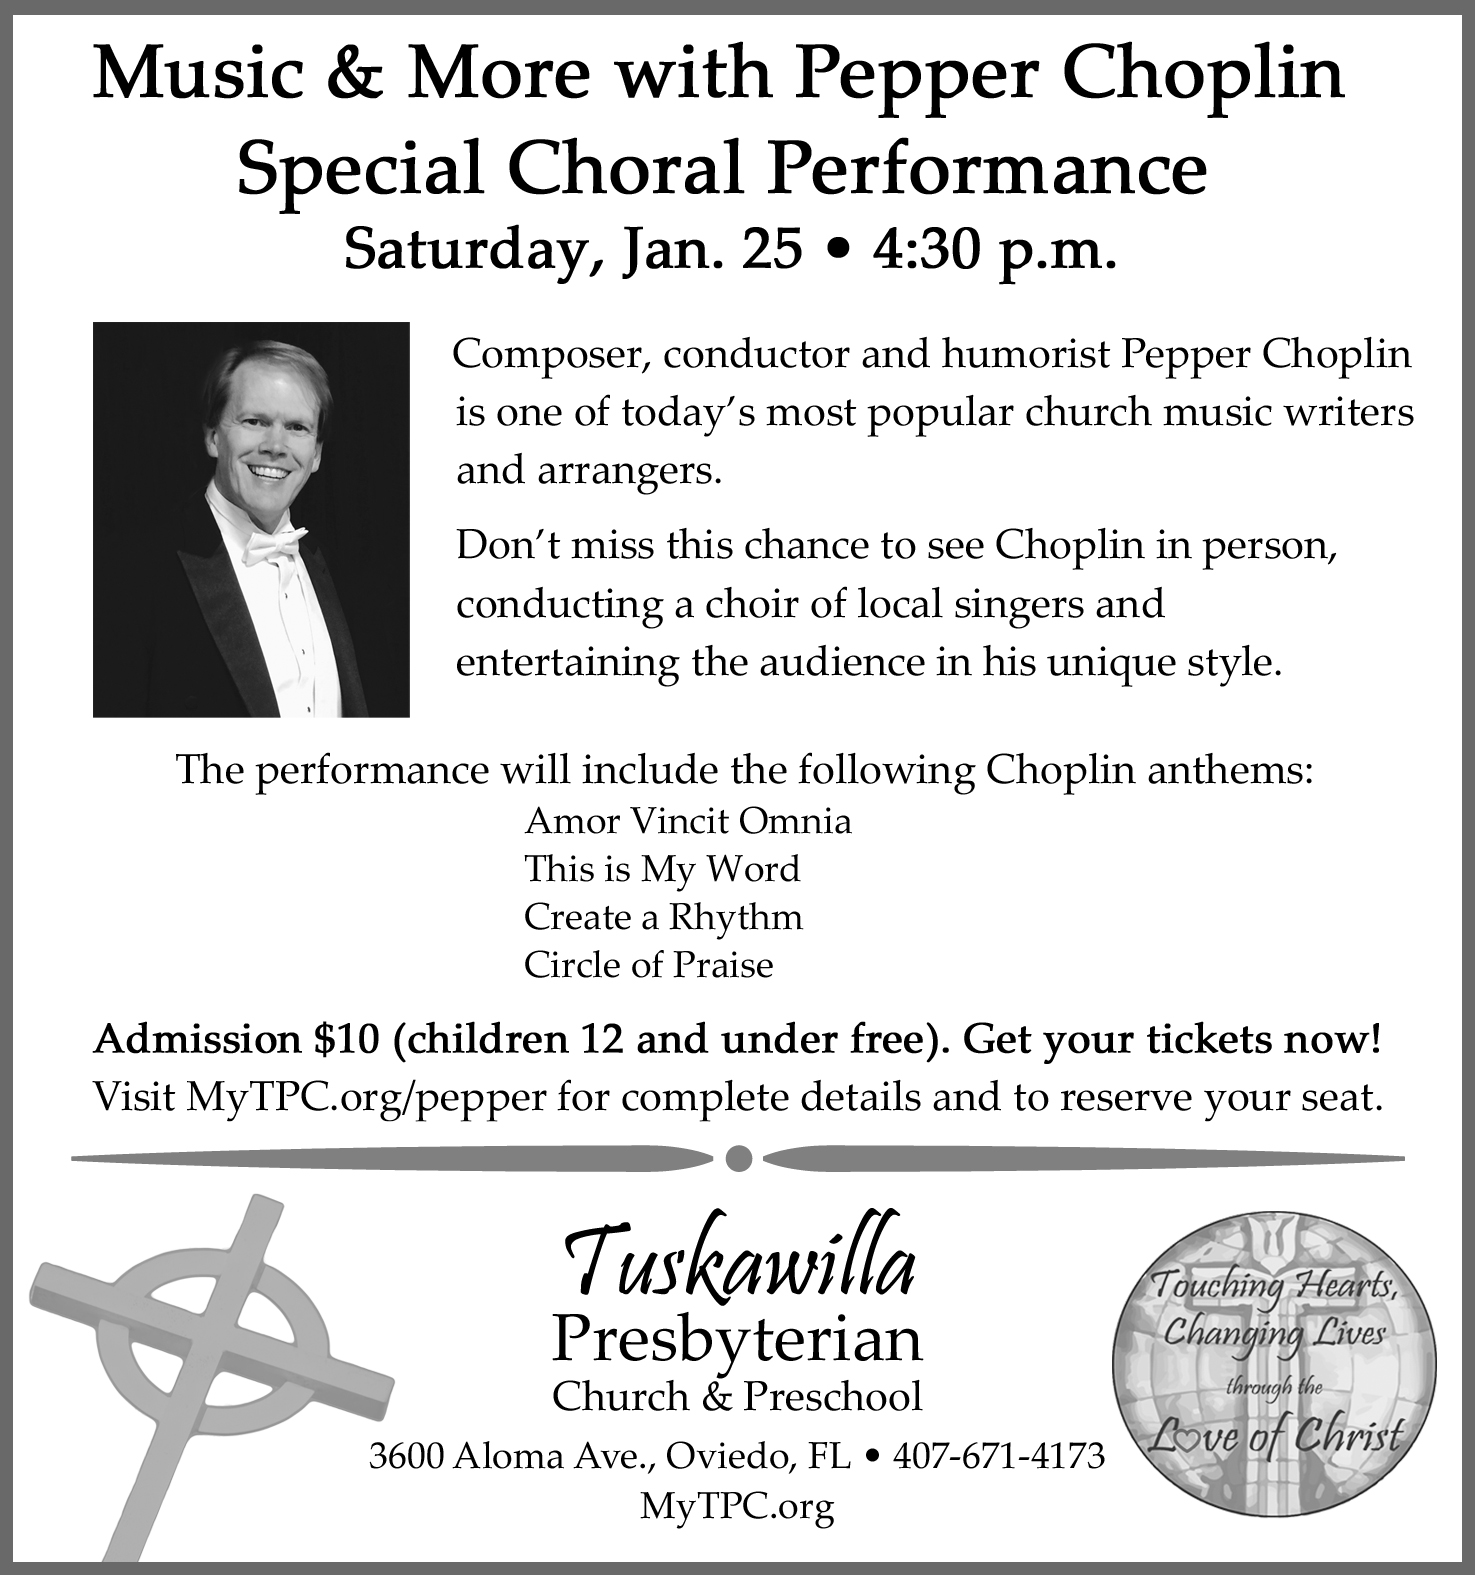 Music & More with Pepper Choplin - Jan. 25